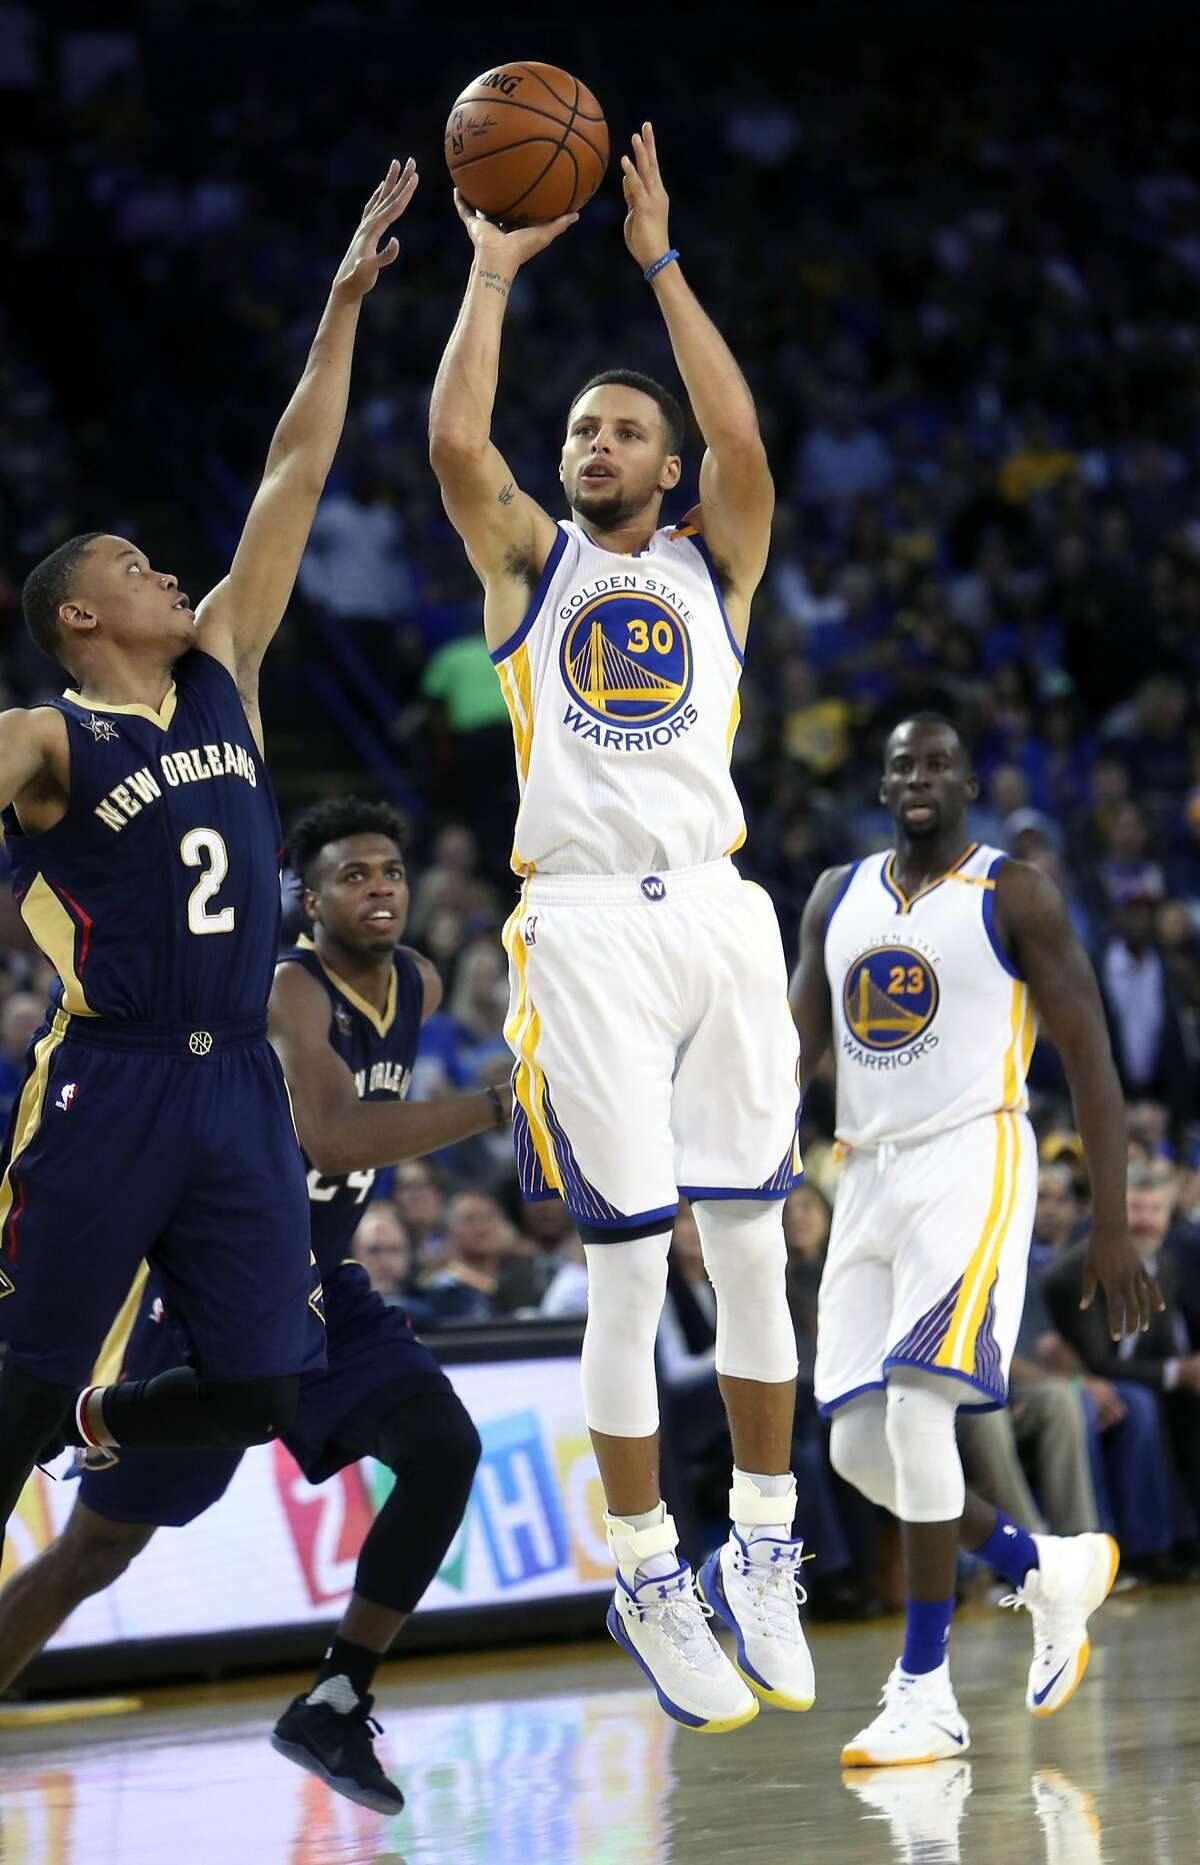 Golden State Warriors' Stephen Curry hits a 3-pointer against New Orleans Pelicans' Tim Frazier in 2nd quarter during NBA game at Oracle Arena in Oakland, Calif., on Monday, November 7, 2016.